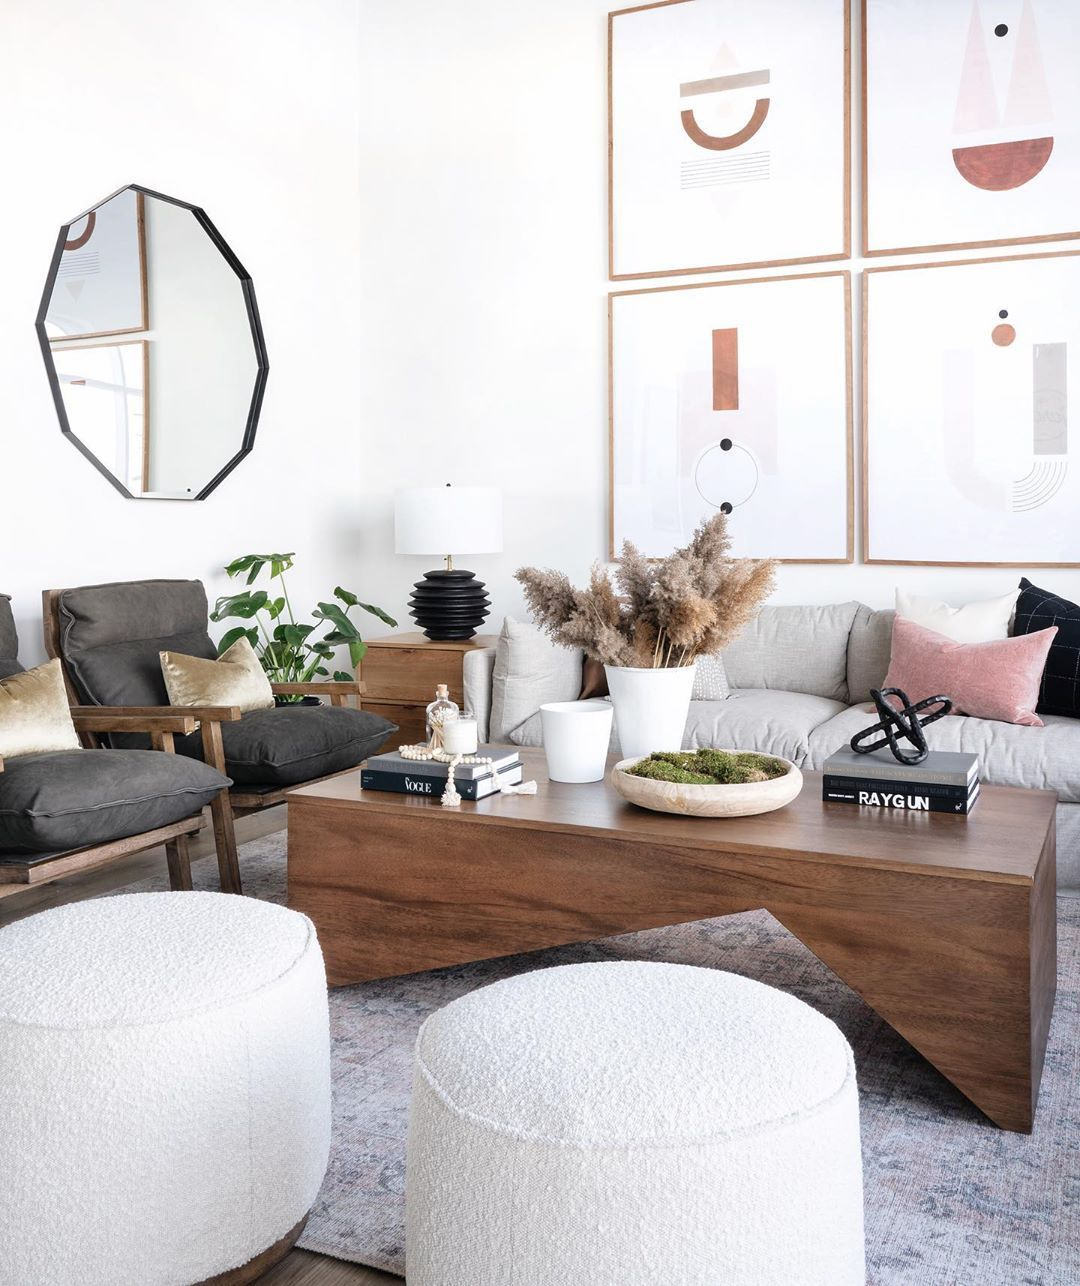 Leclair Decor On Instagram Another View Of Our Front Room Set Up In The Expansion We Were Back At It Today A Small Living Rooms Home Decor Small Living Room View home decor for living room table